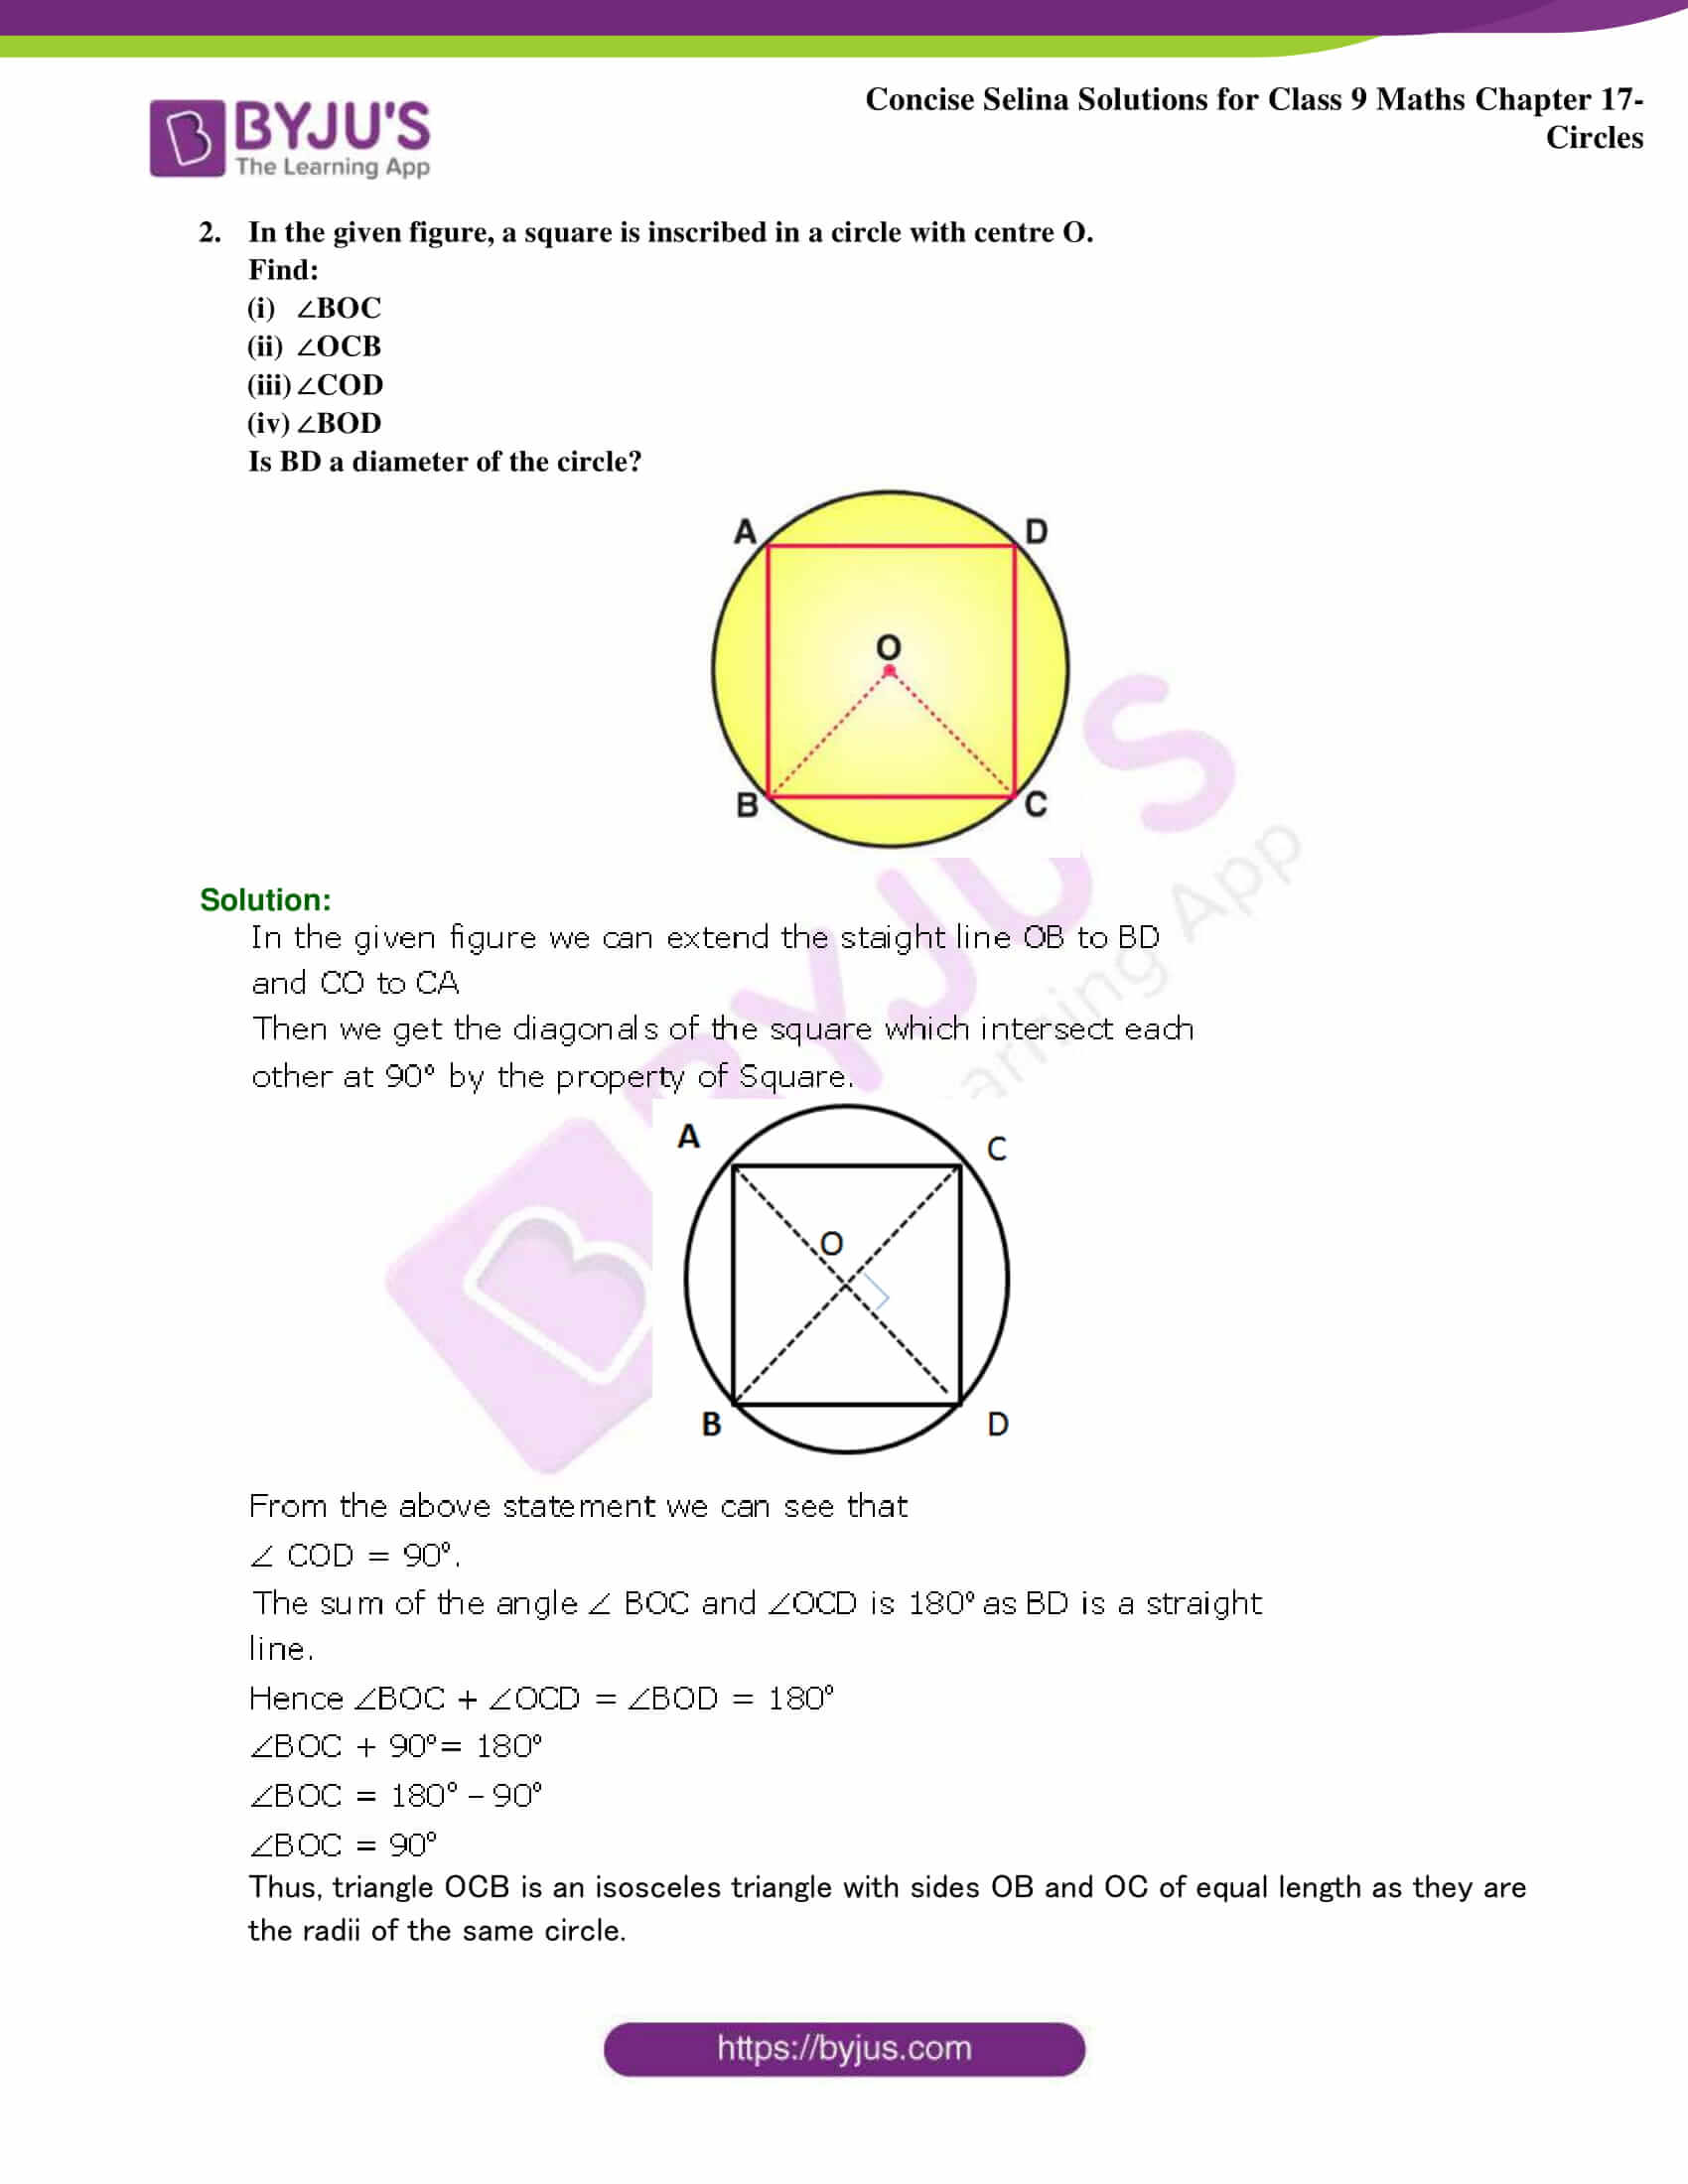 Concise Selina Solutions Class 9 Maths Chapter 17 Circles part 19